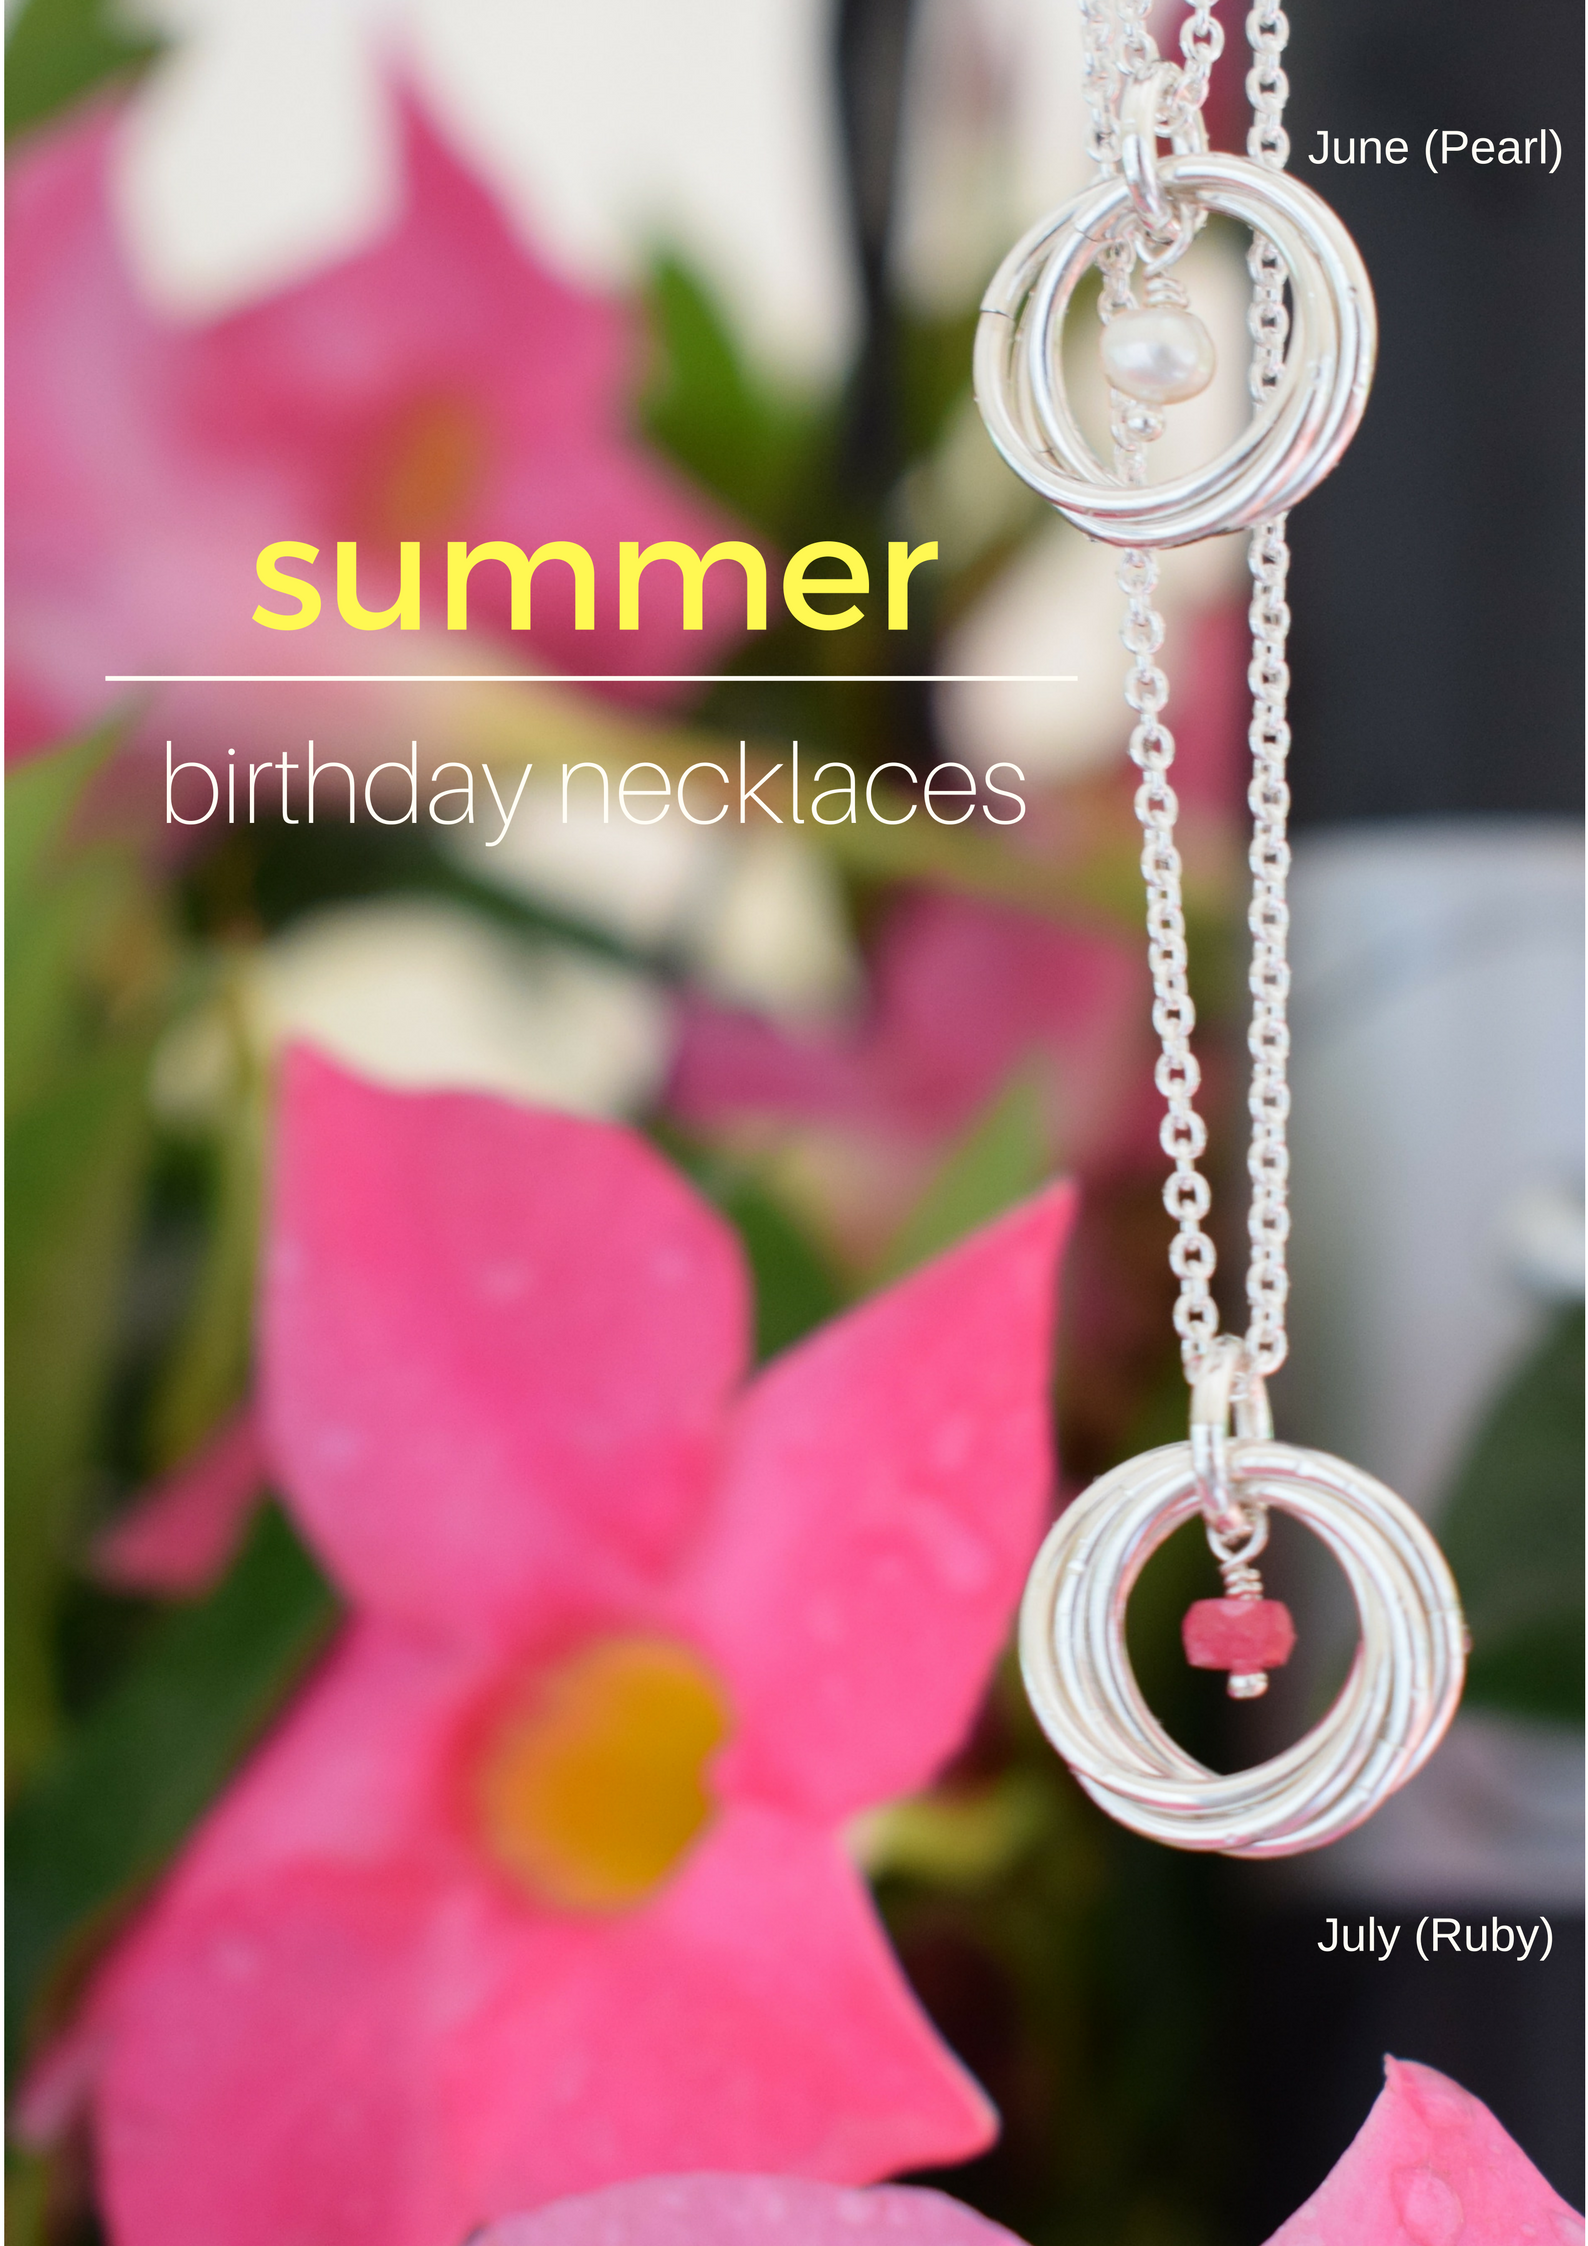 Summer Birthday Gifts For Her June July Birthstone Necklaces Pearl Ruby